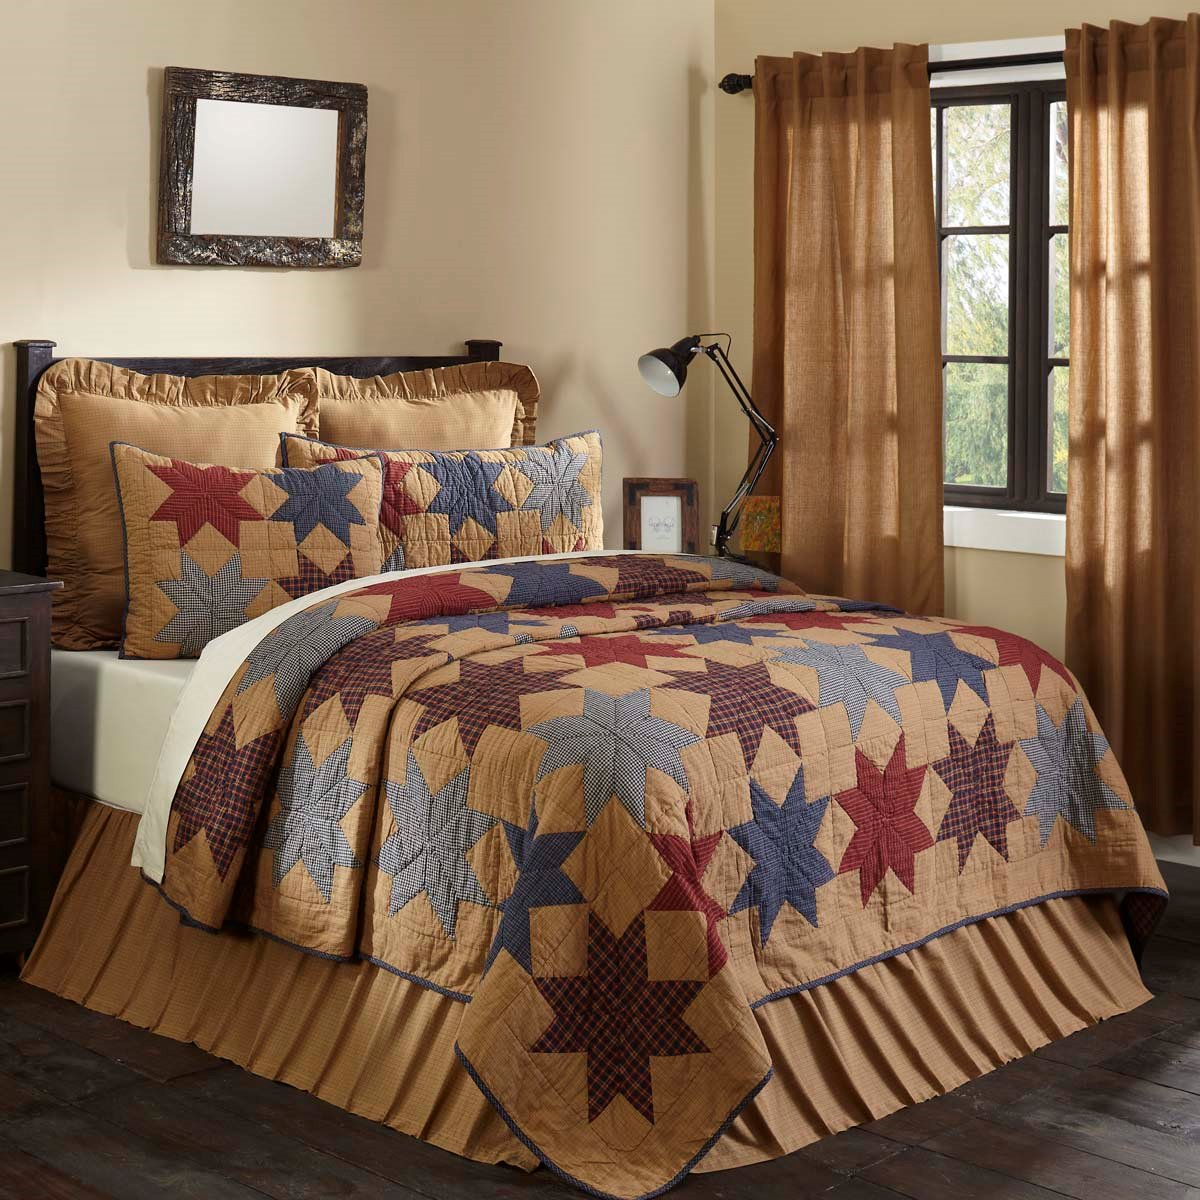 Kindred Star Twin Quilt 86x68